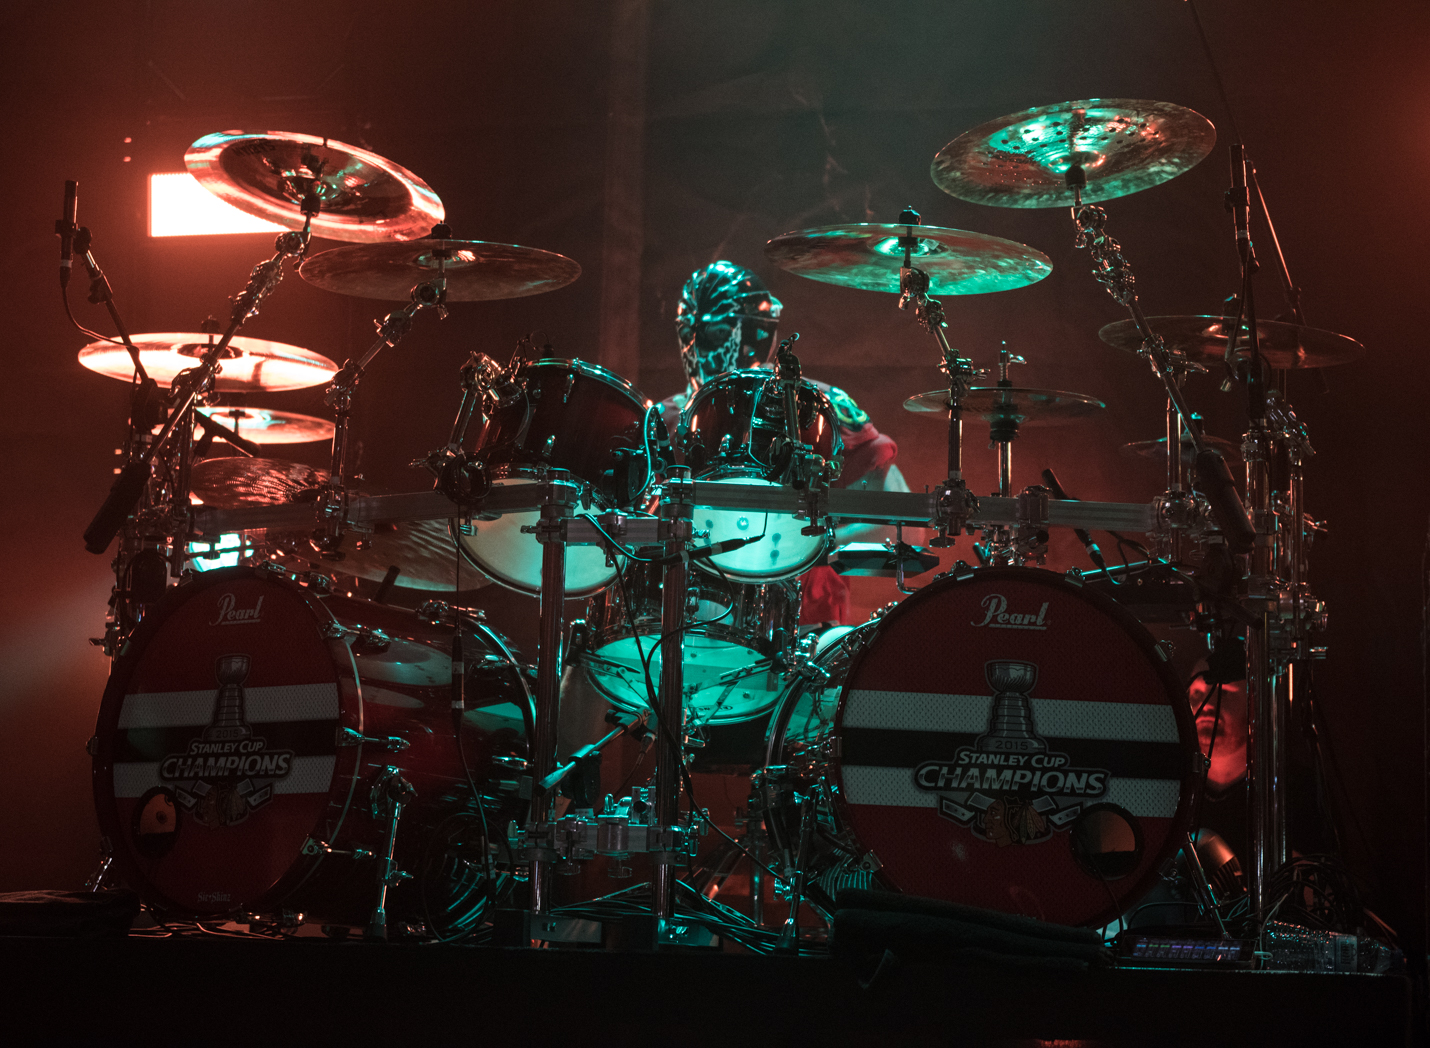 Interview: Blow Out Your Eyes on These Bass Drums: Disturbed's Mike Wengren